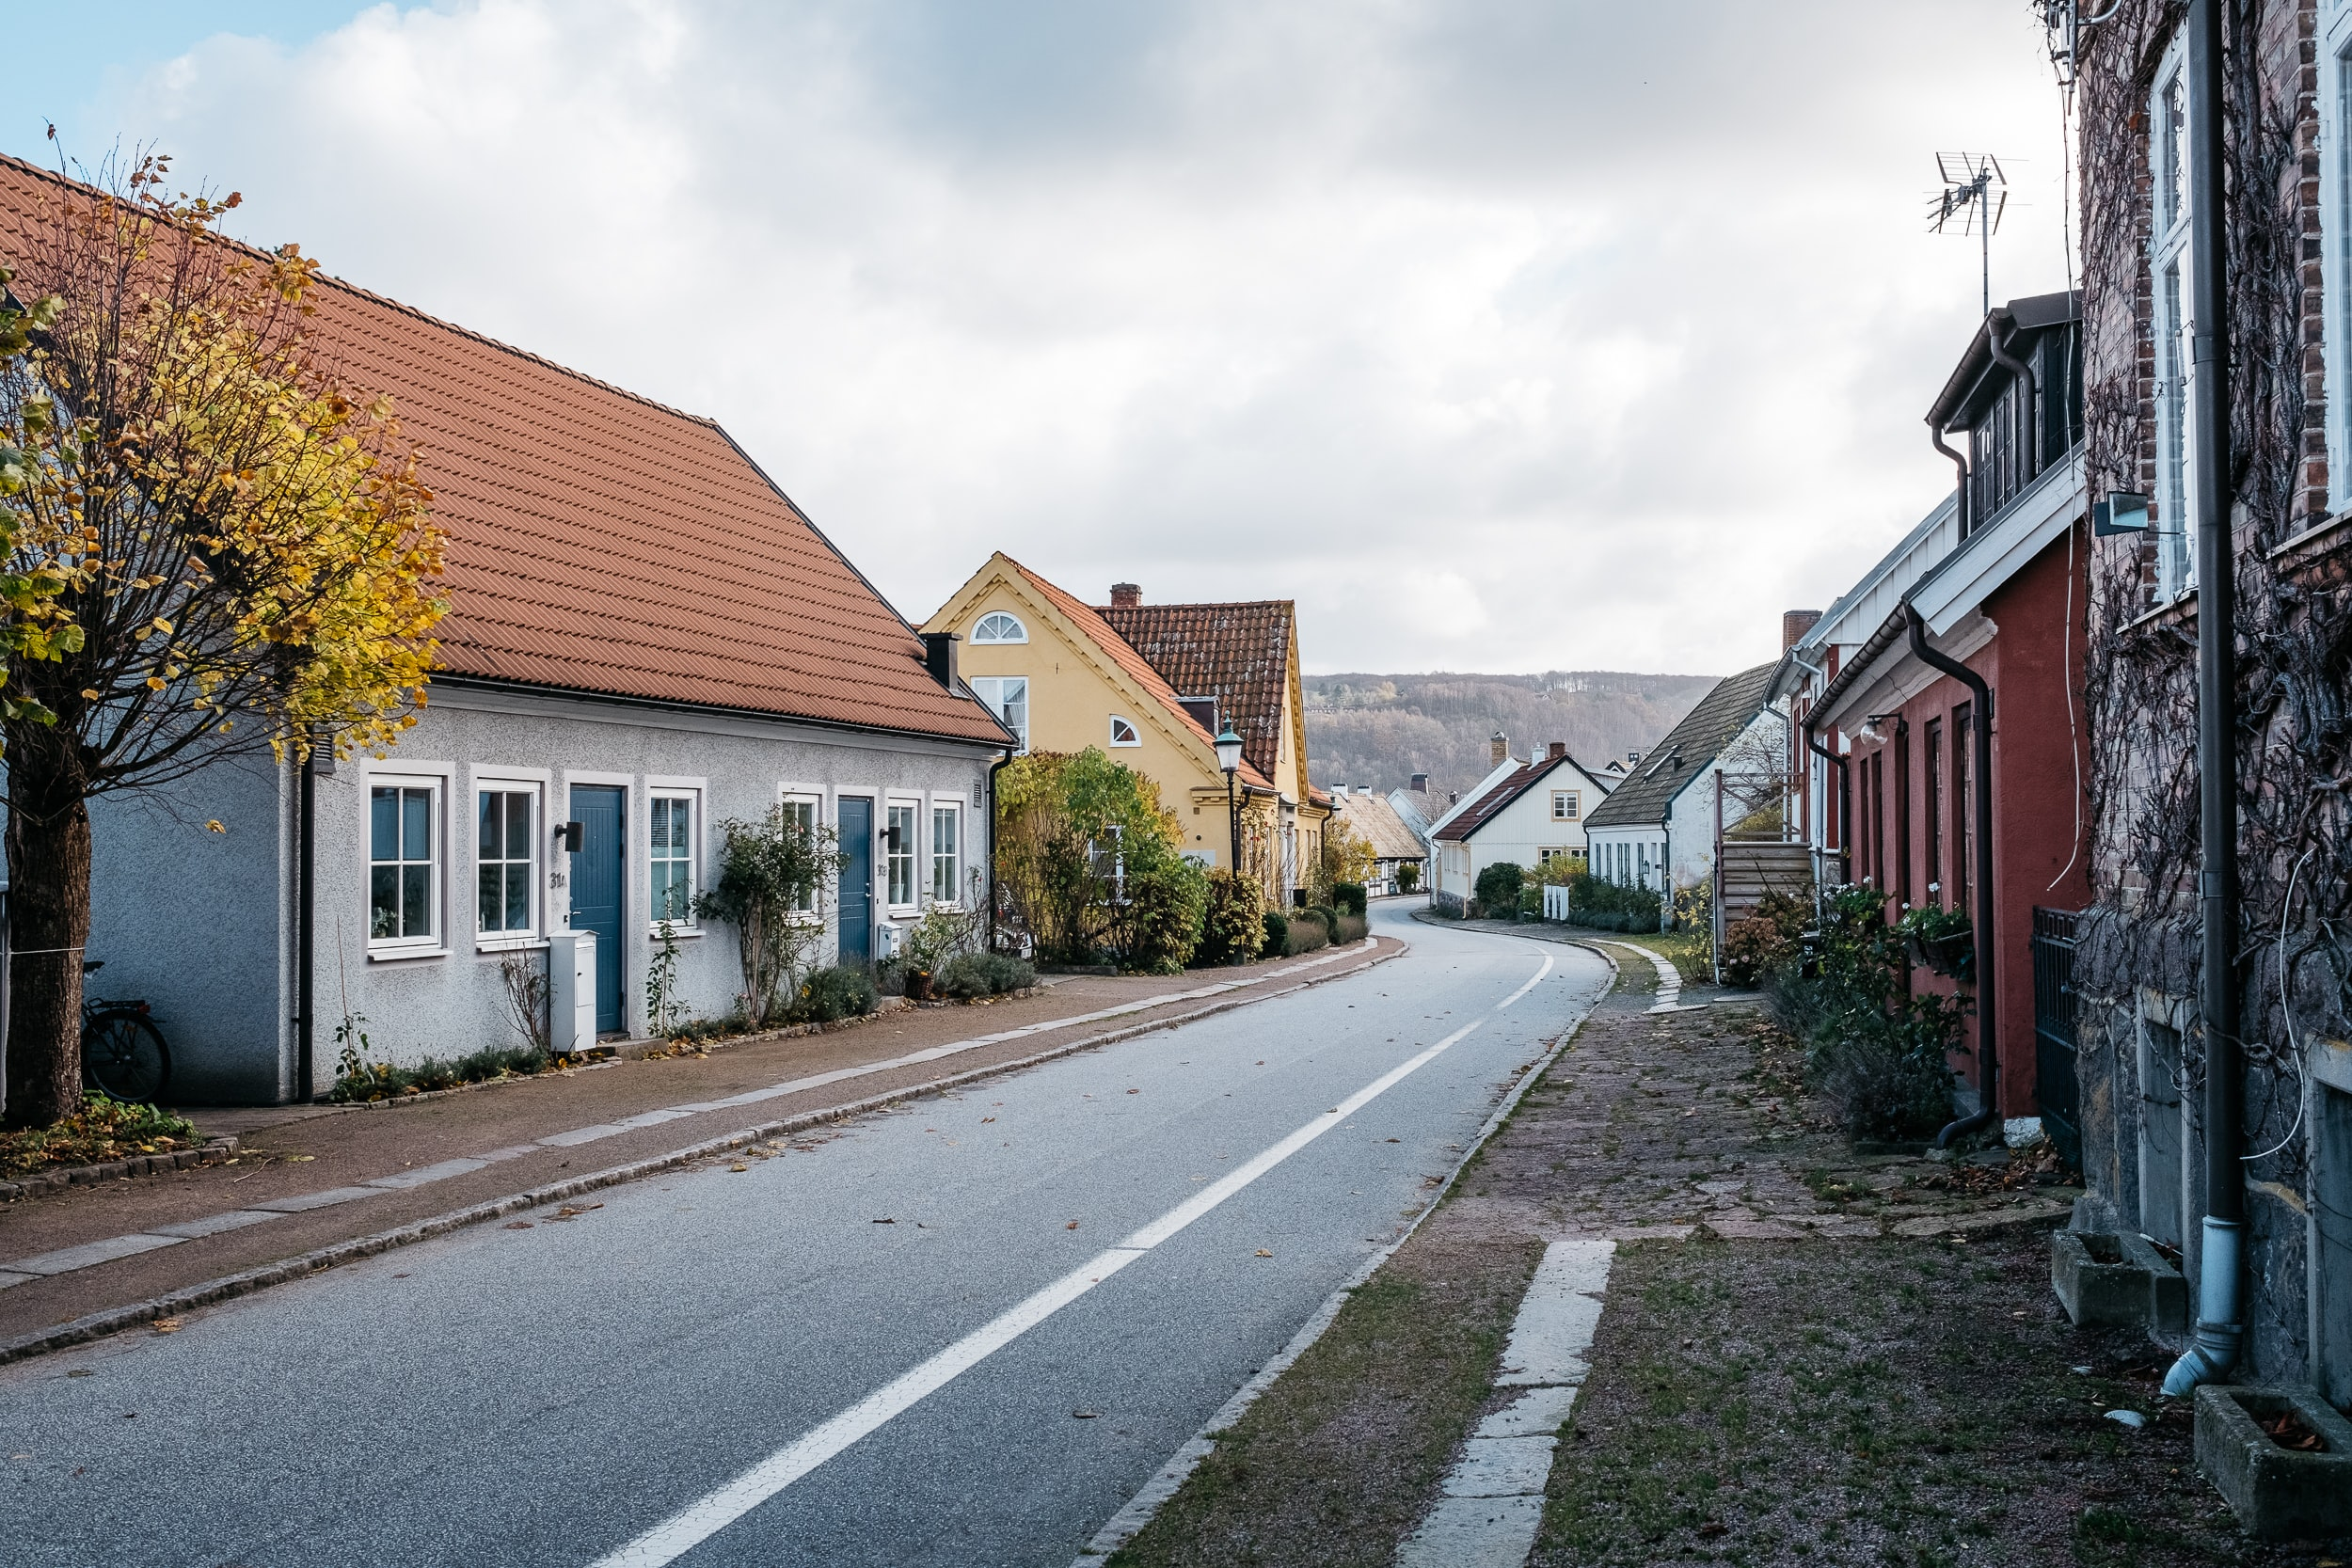 road near houses